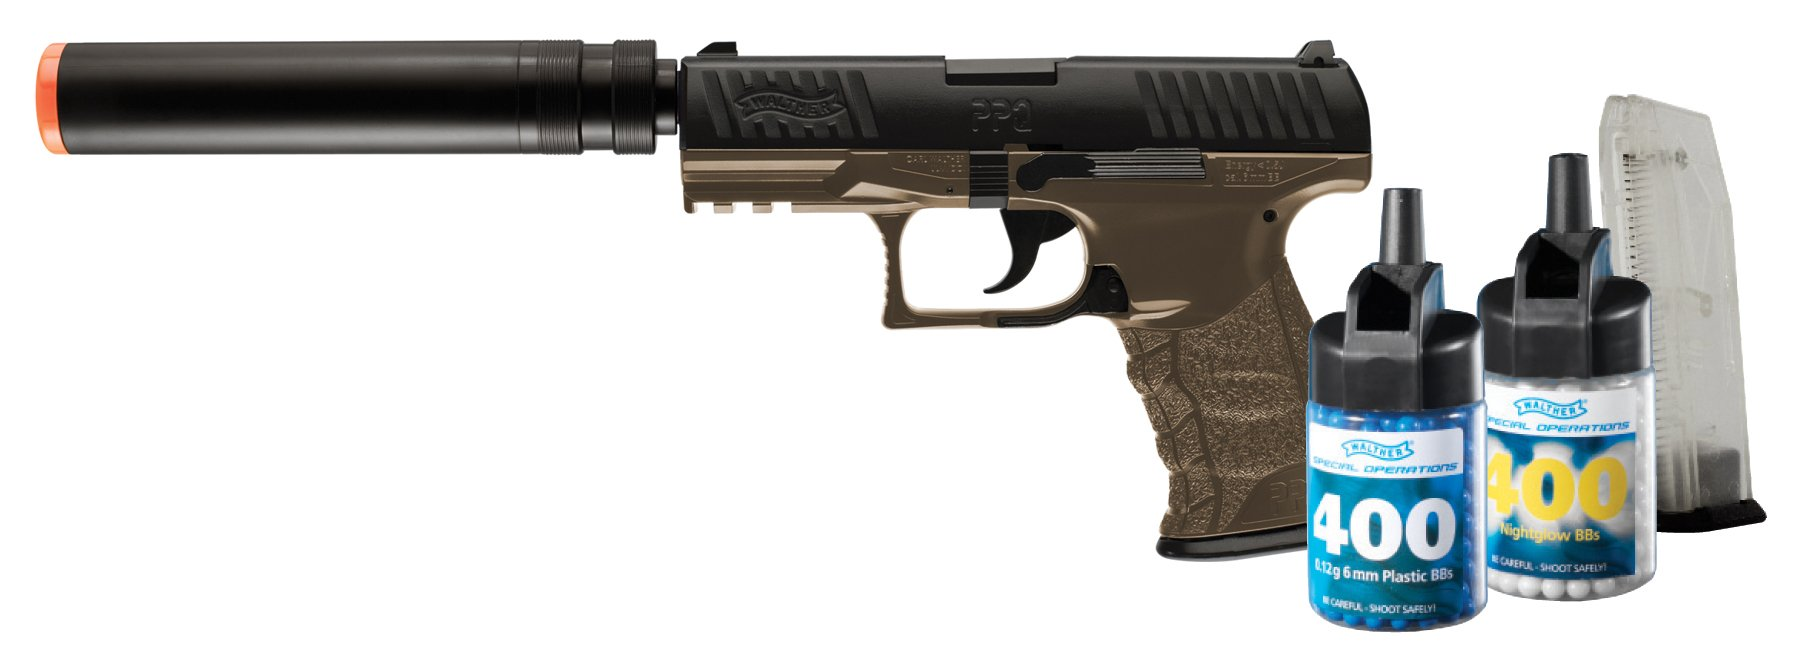 Walther Spring Airsoft Pistol Accessories